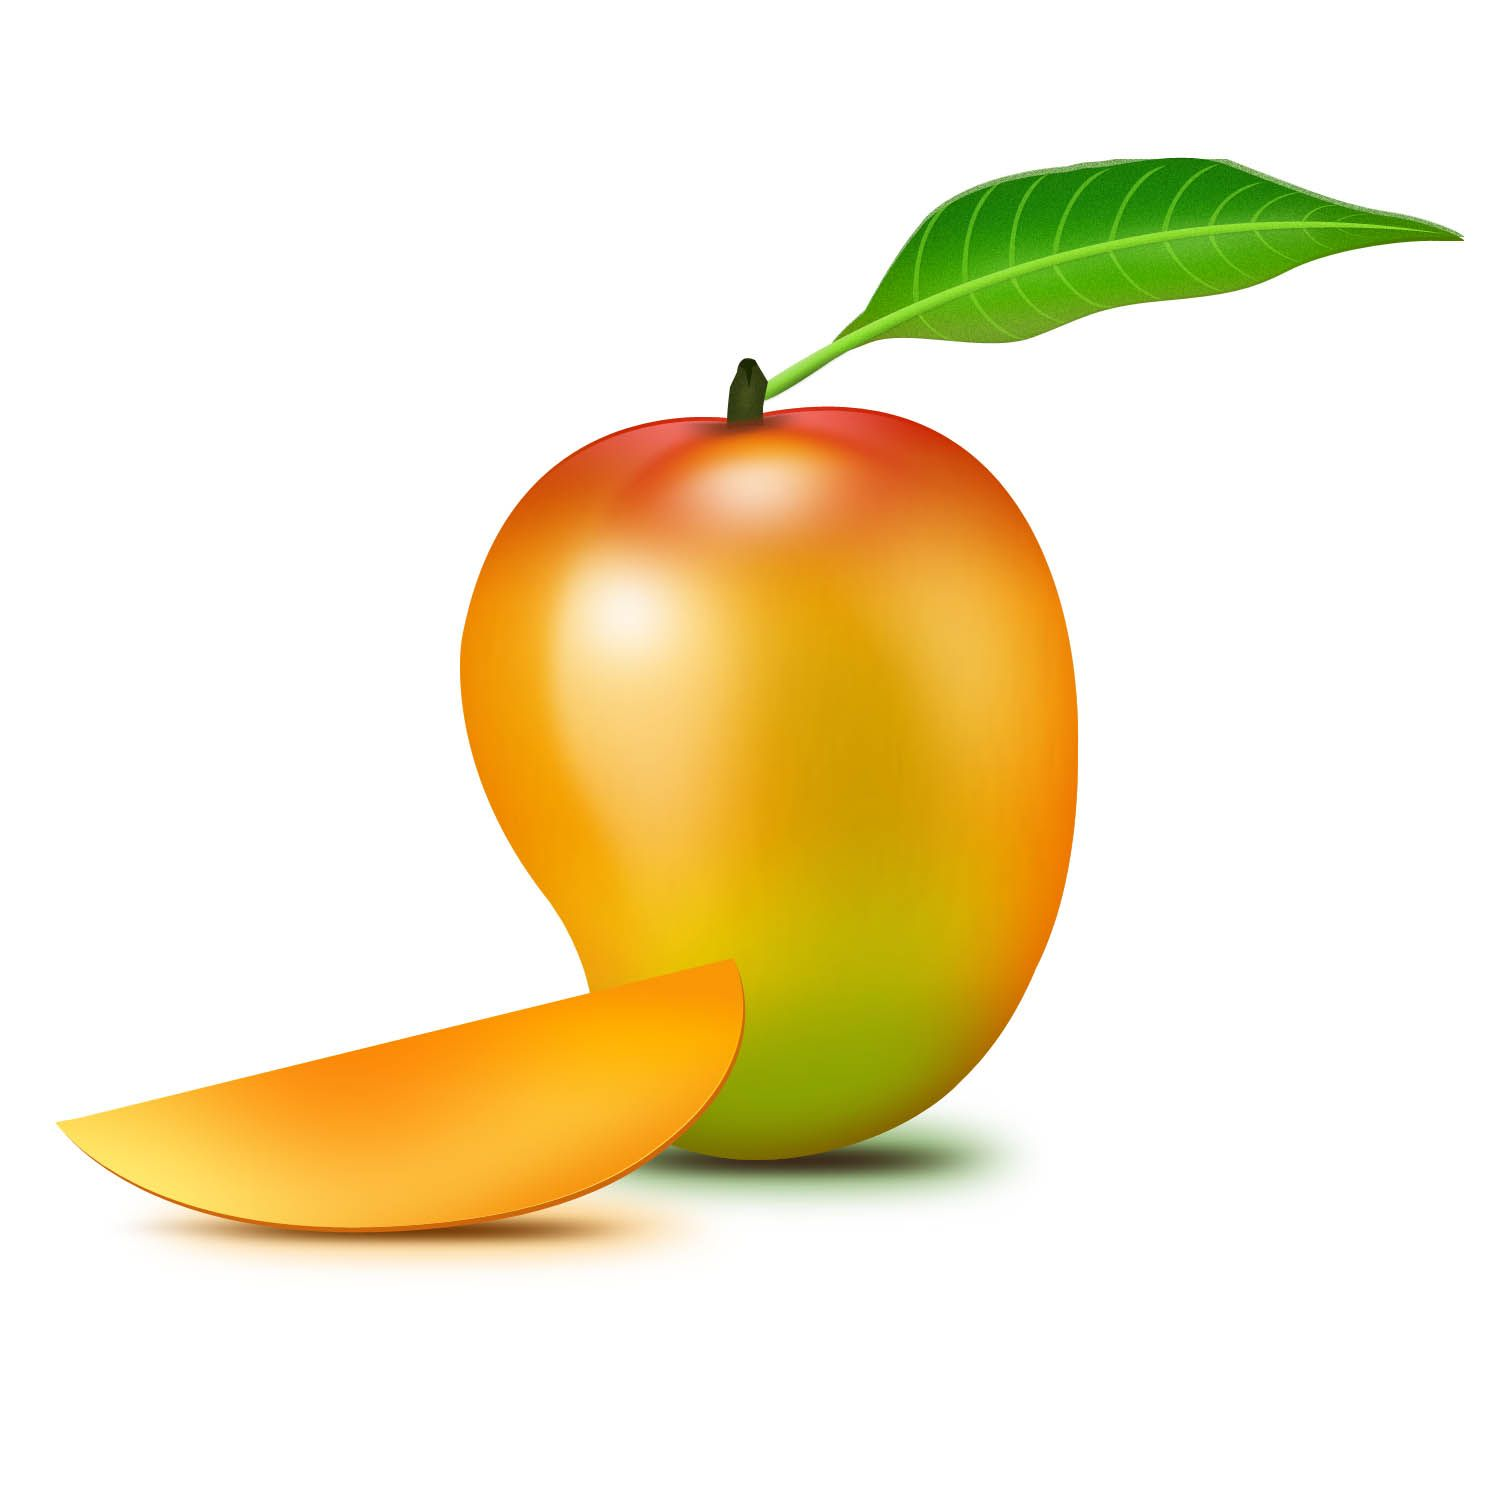 1500x1500 Images For Gt Mango Images Clip Art Yweb Portfolio Mood Board